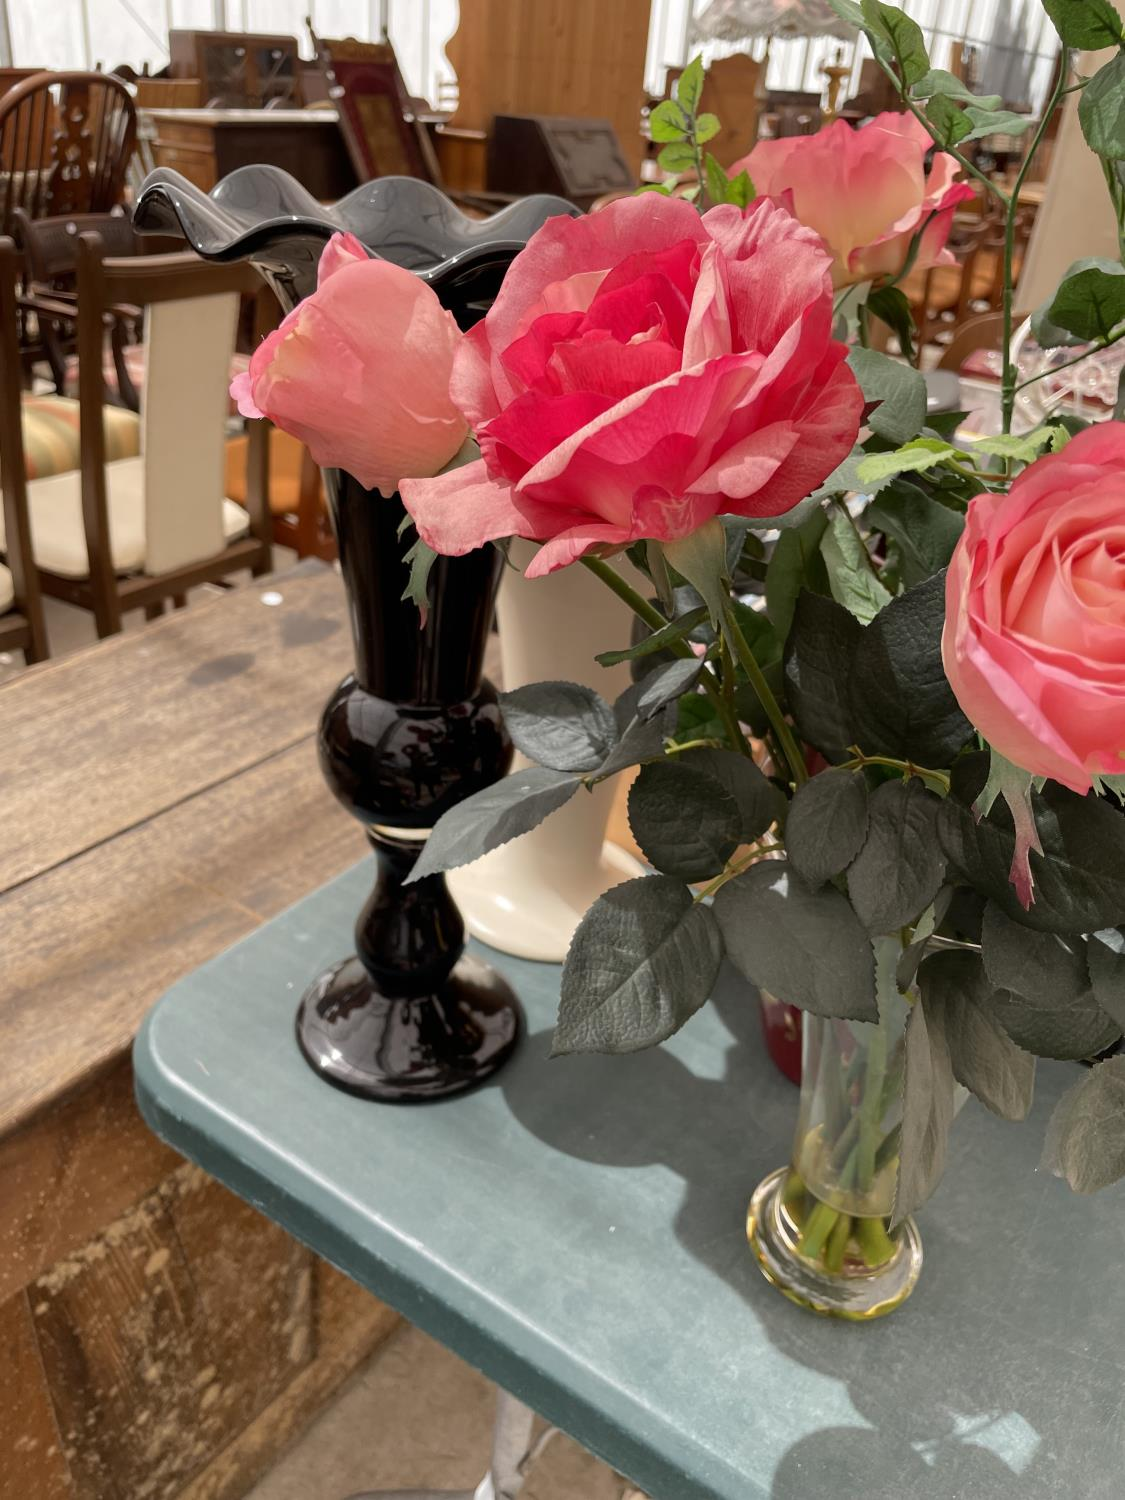 AN ASSORTMENT OF VASES TO INCLUDE ARTIFICIAL FLOWERS - Image 3 of 4